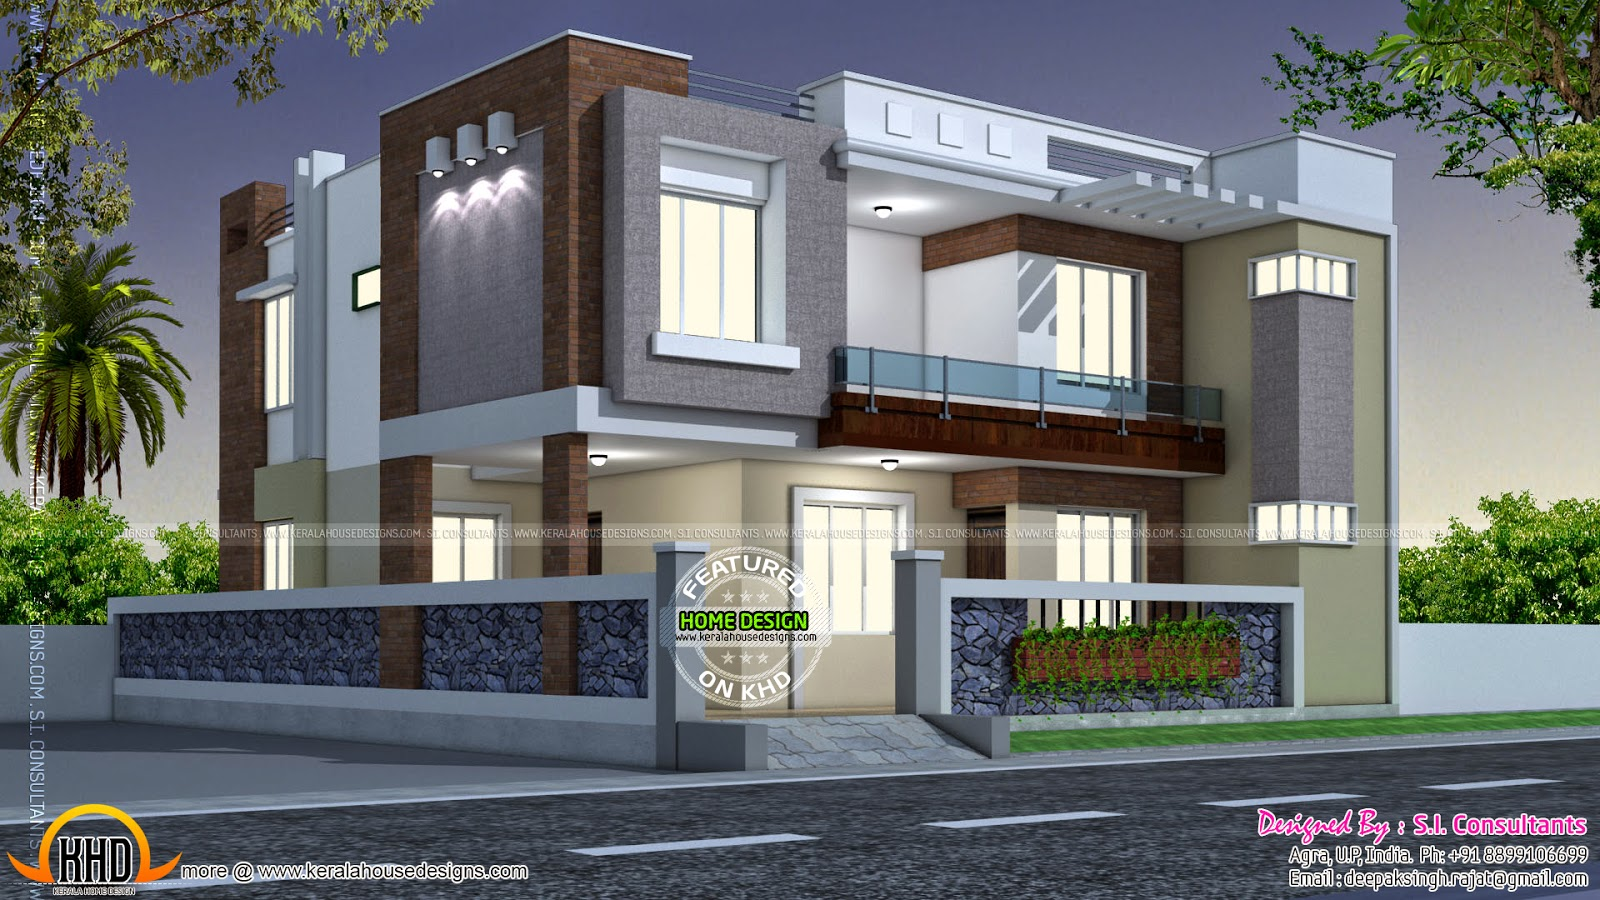 Modern Style Indian Home Kerala Home Design And Floor Plans: homes design images india